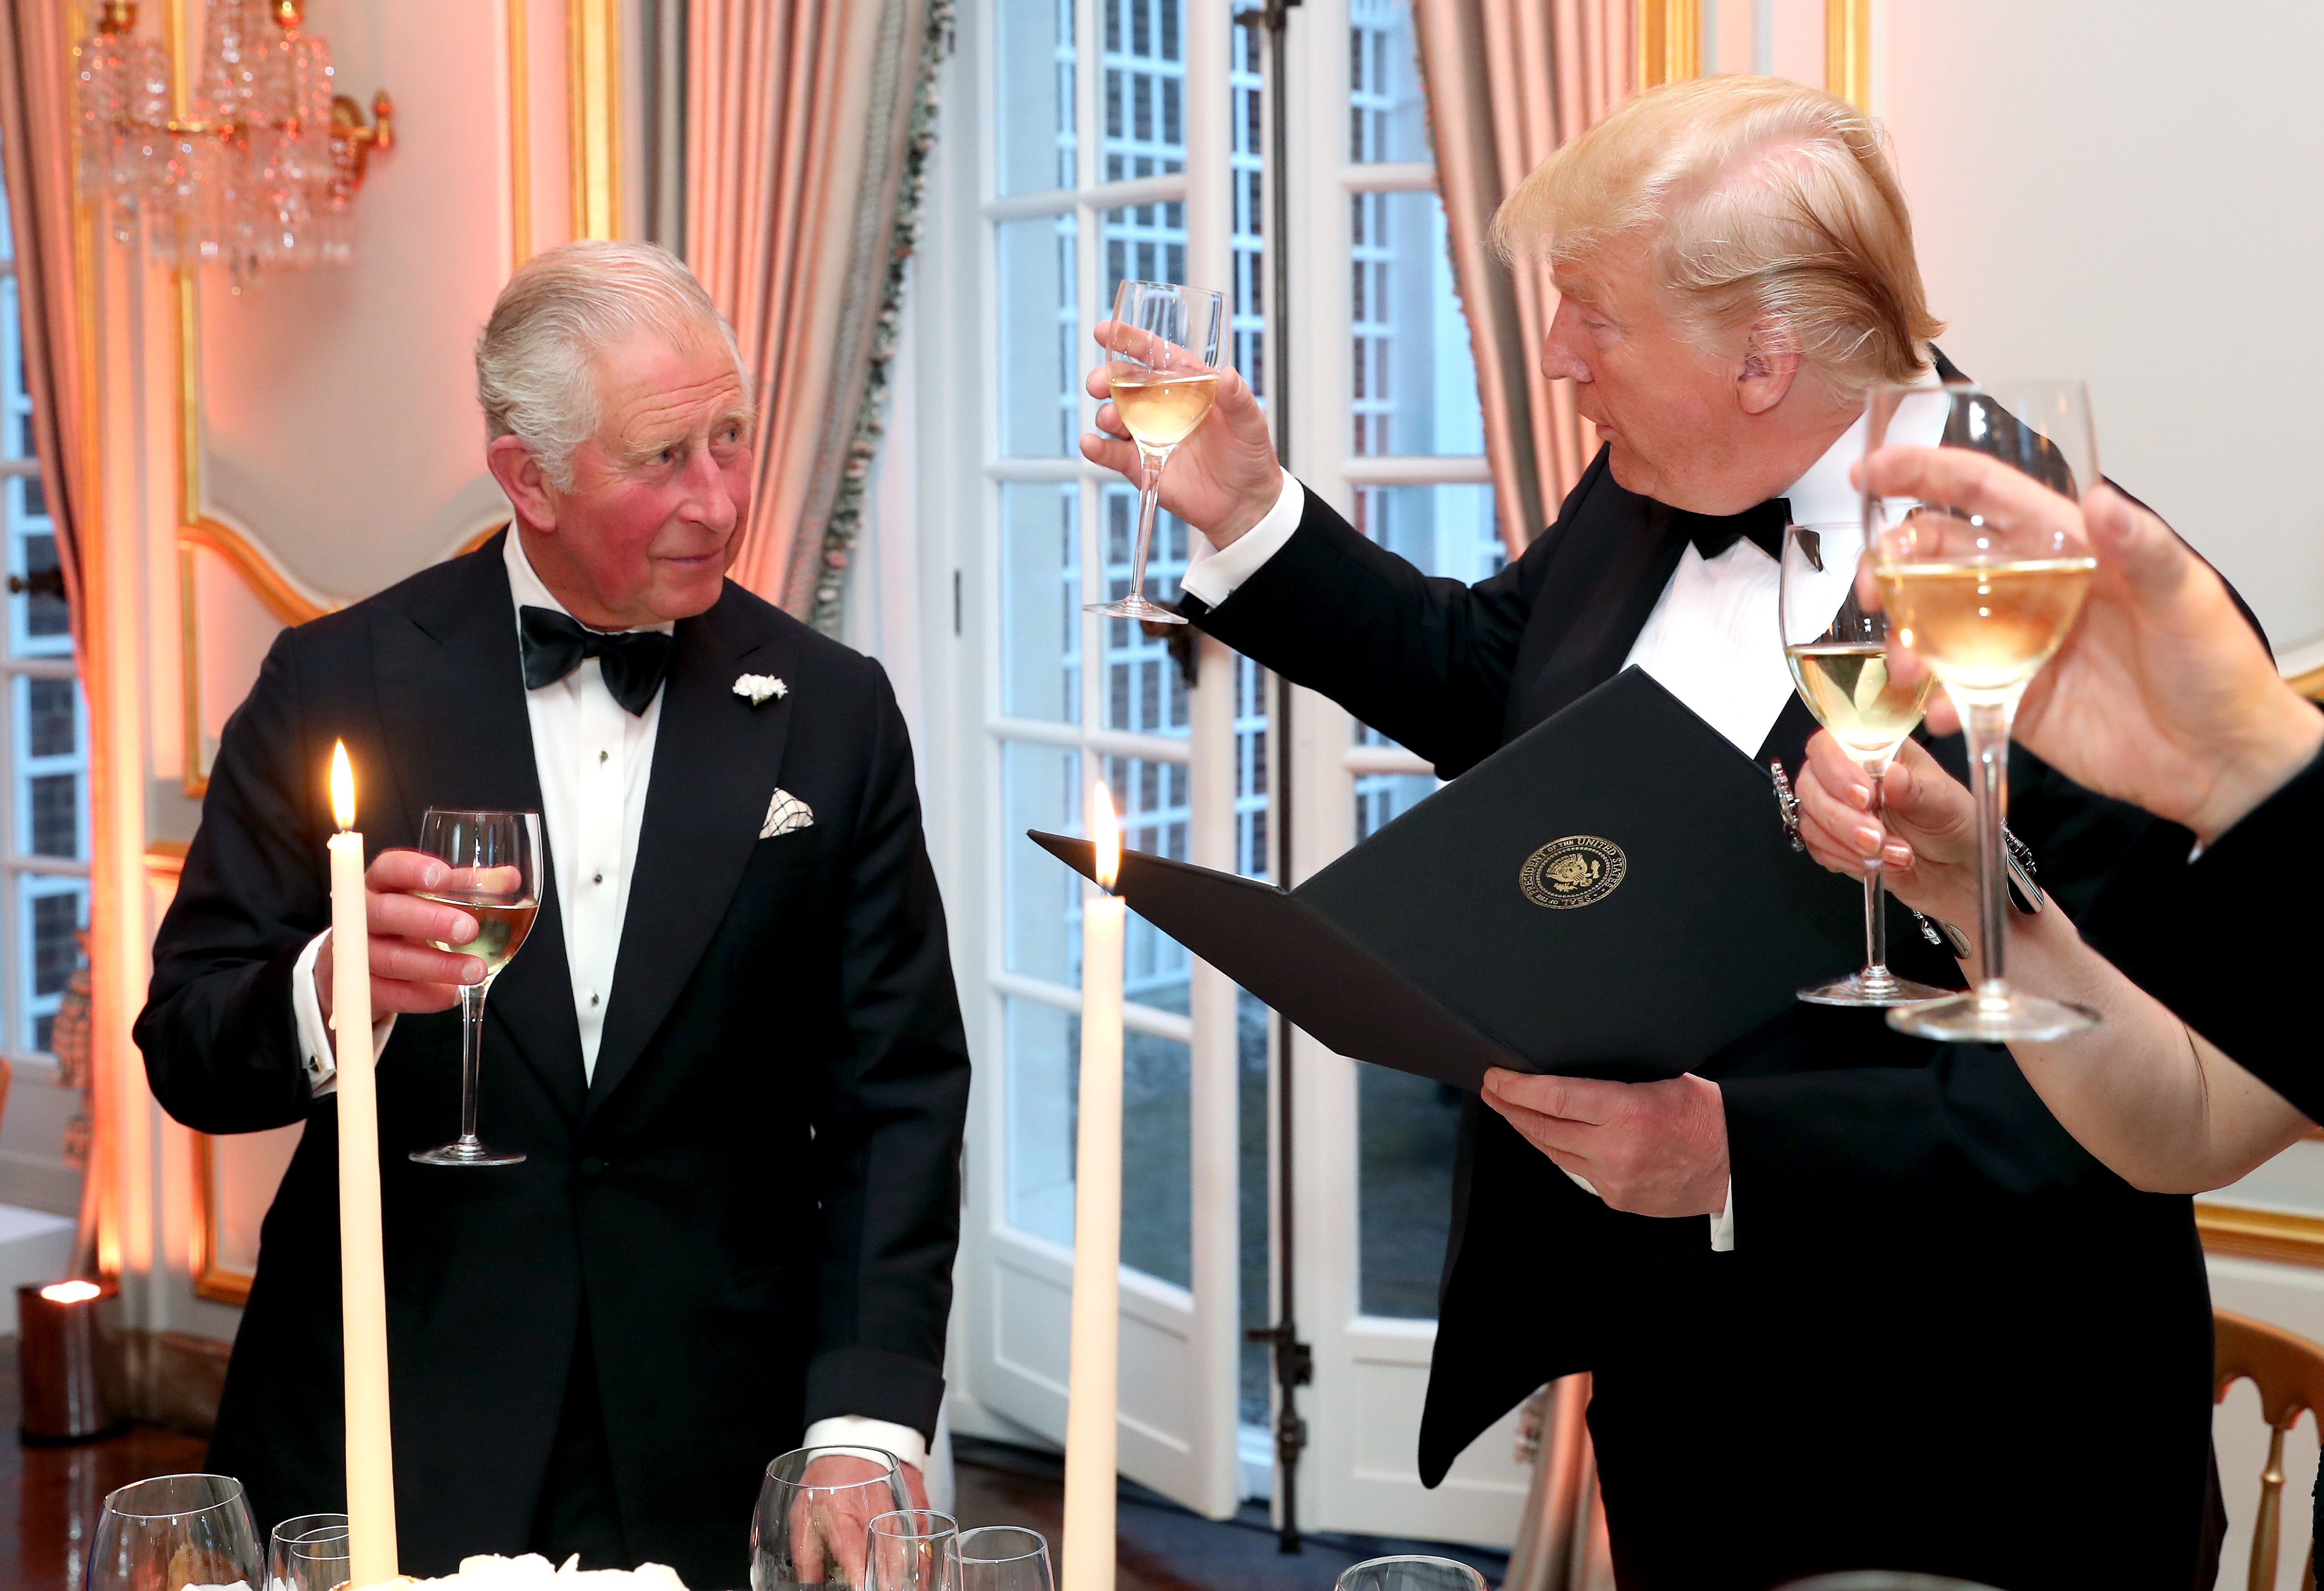 US President Donald Trump and the Prince of Wales during the toast at the Return Dinner at Winfield House, the residence of the Ambassador of the United States of America to the UK, in Regent's Park, London, as part of his state visit to the UK.